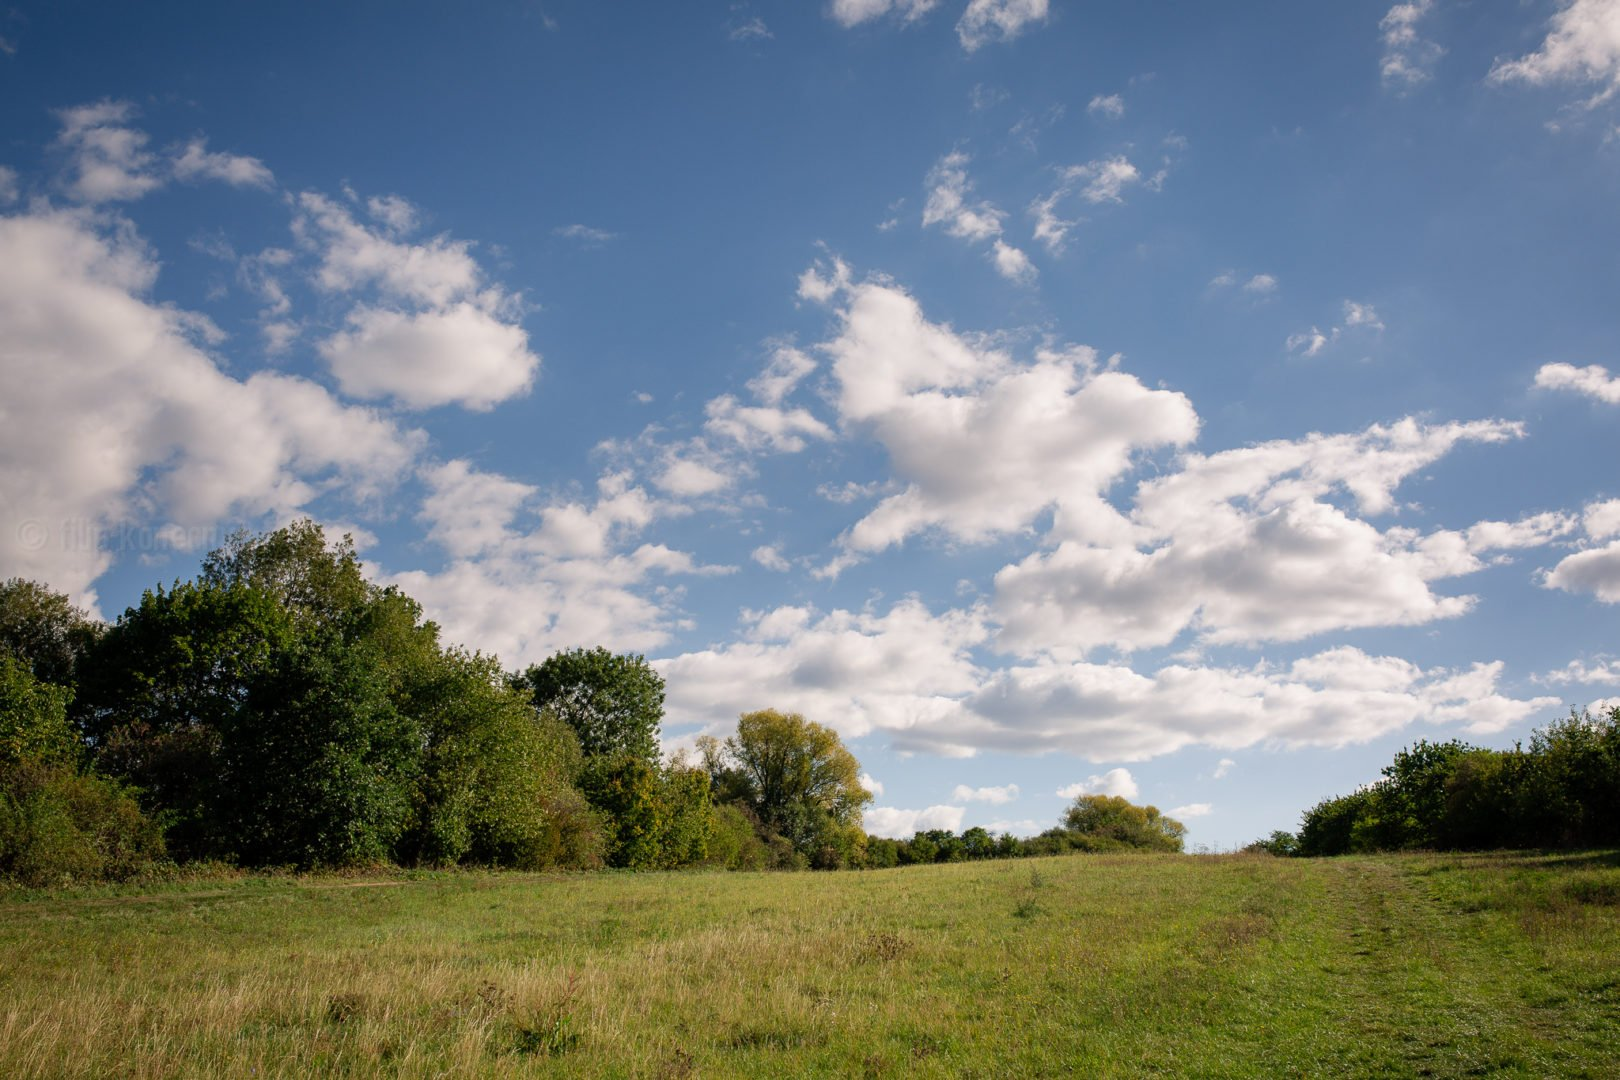 landscape with meadow, trees and cloudy sky